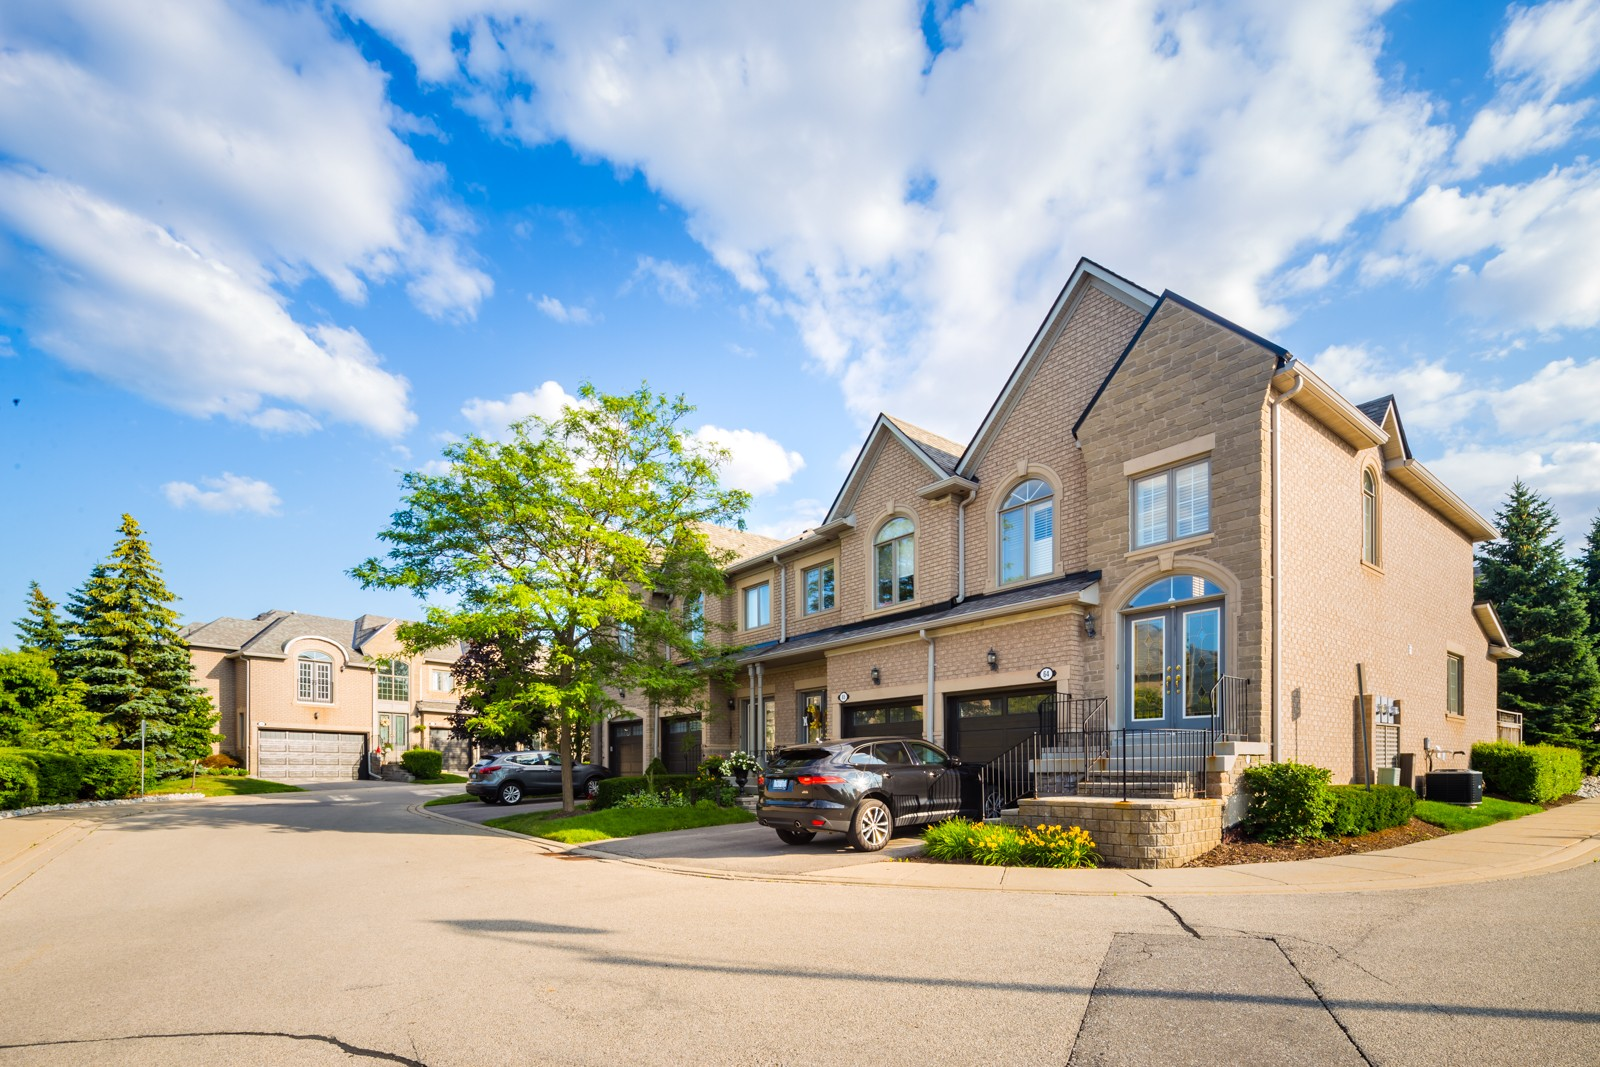 2250 Rockingham Dr Townhouses at 2250 Rockingham Dr, Oakville 0